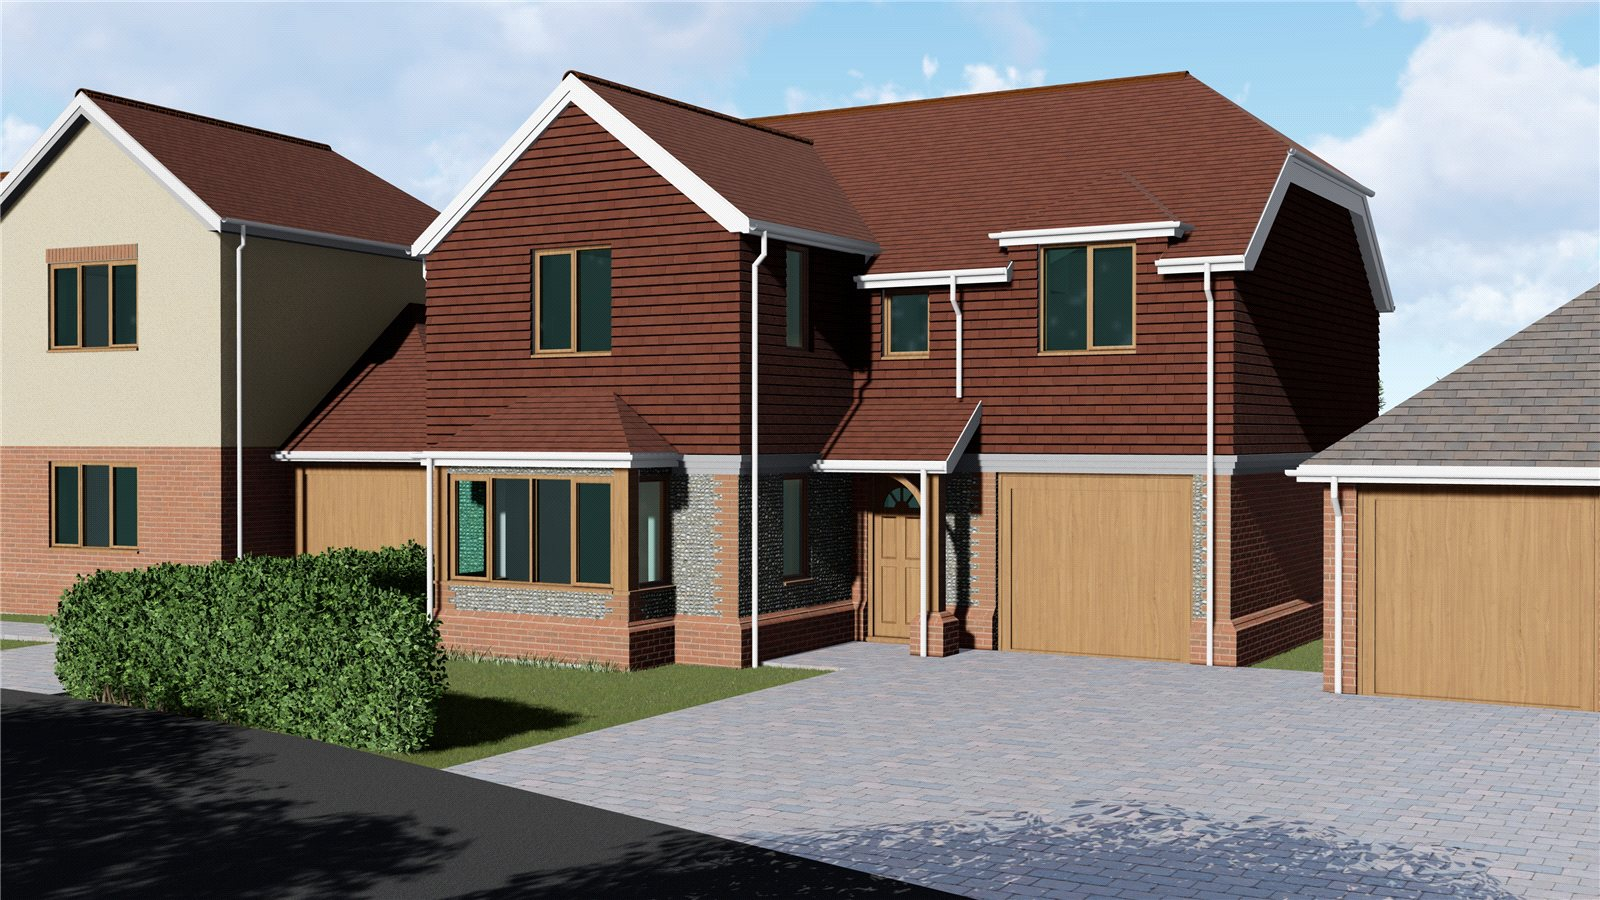 4 bed house for sale in Starlings View, Arundel Road, Angmering  - Property Image 1